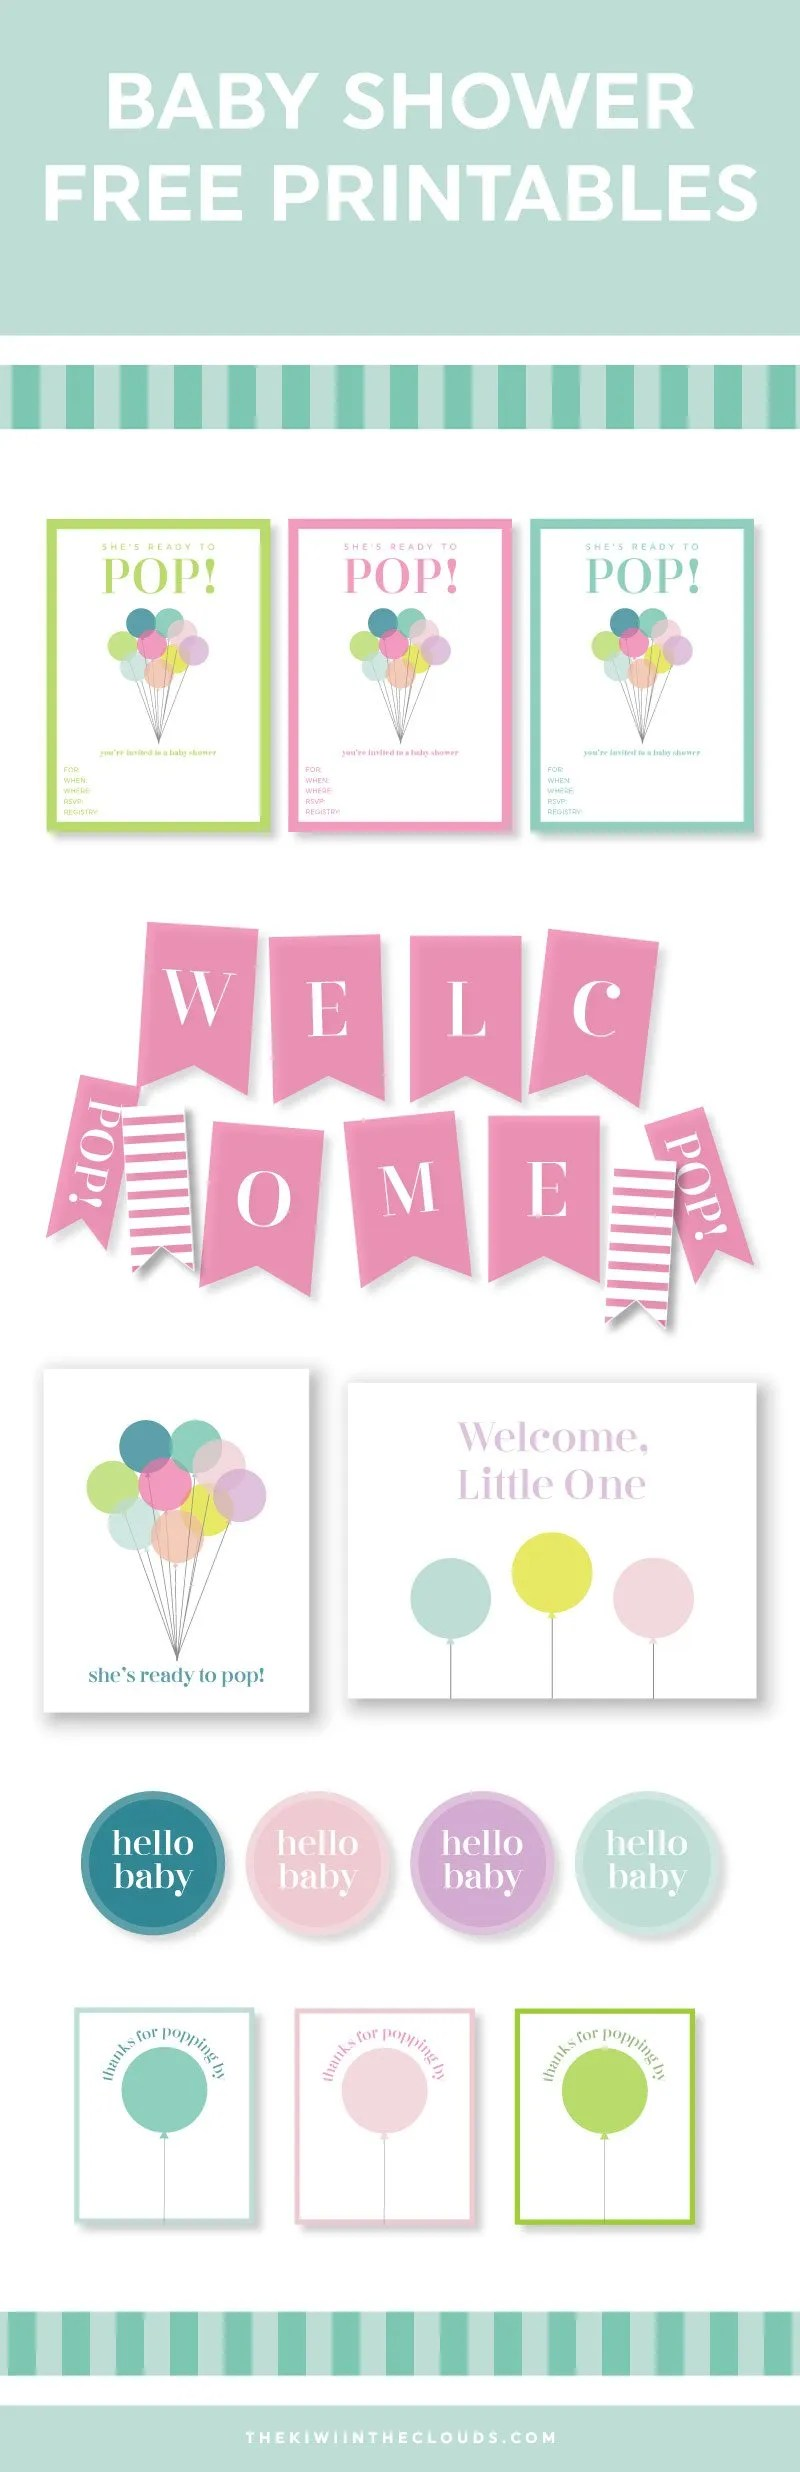 picture about Ready to Pop Free Printable called 65 Cost-free Child Shower Printables for an Lovely Bash